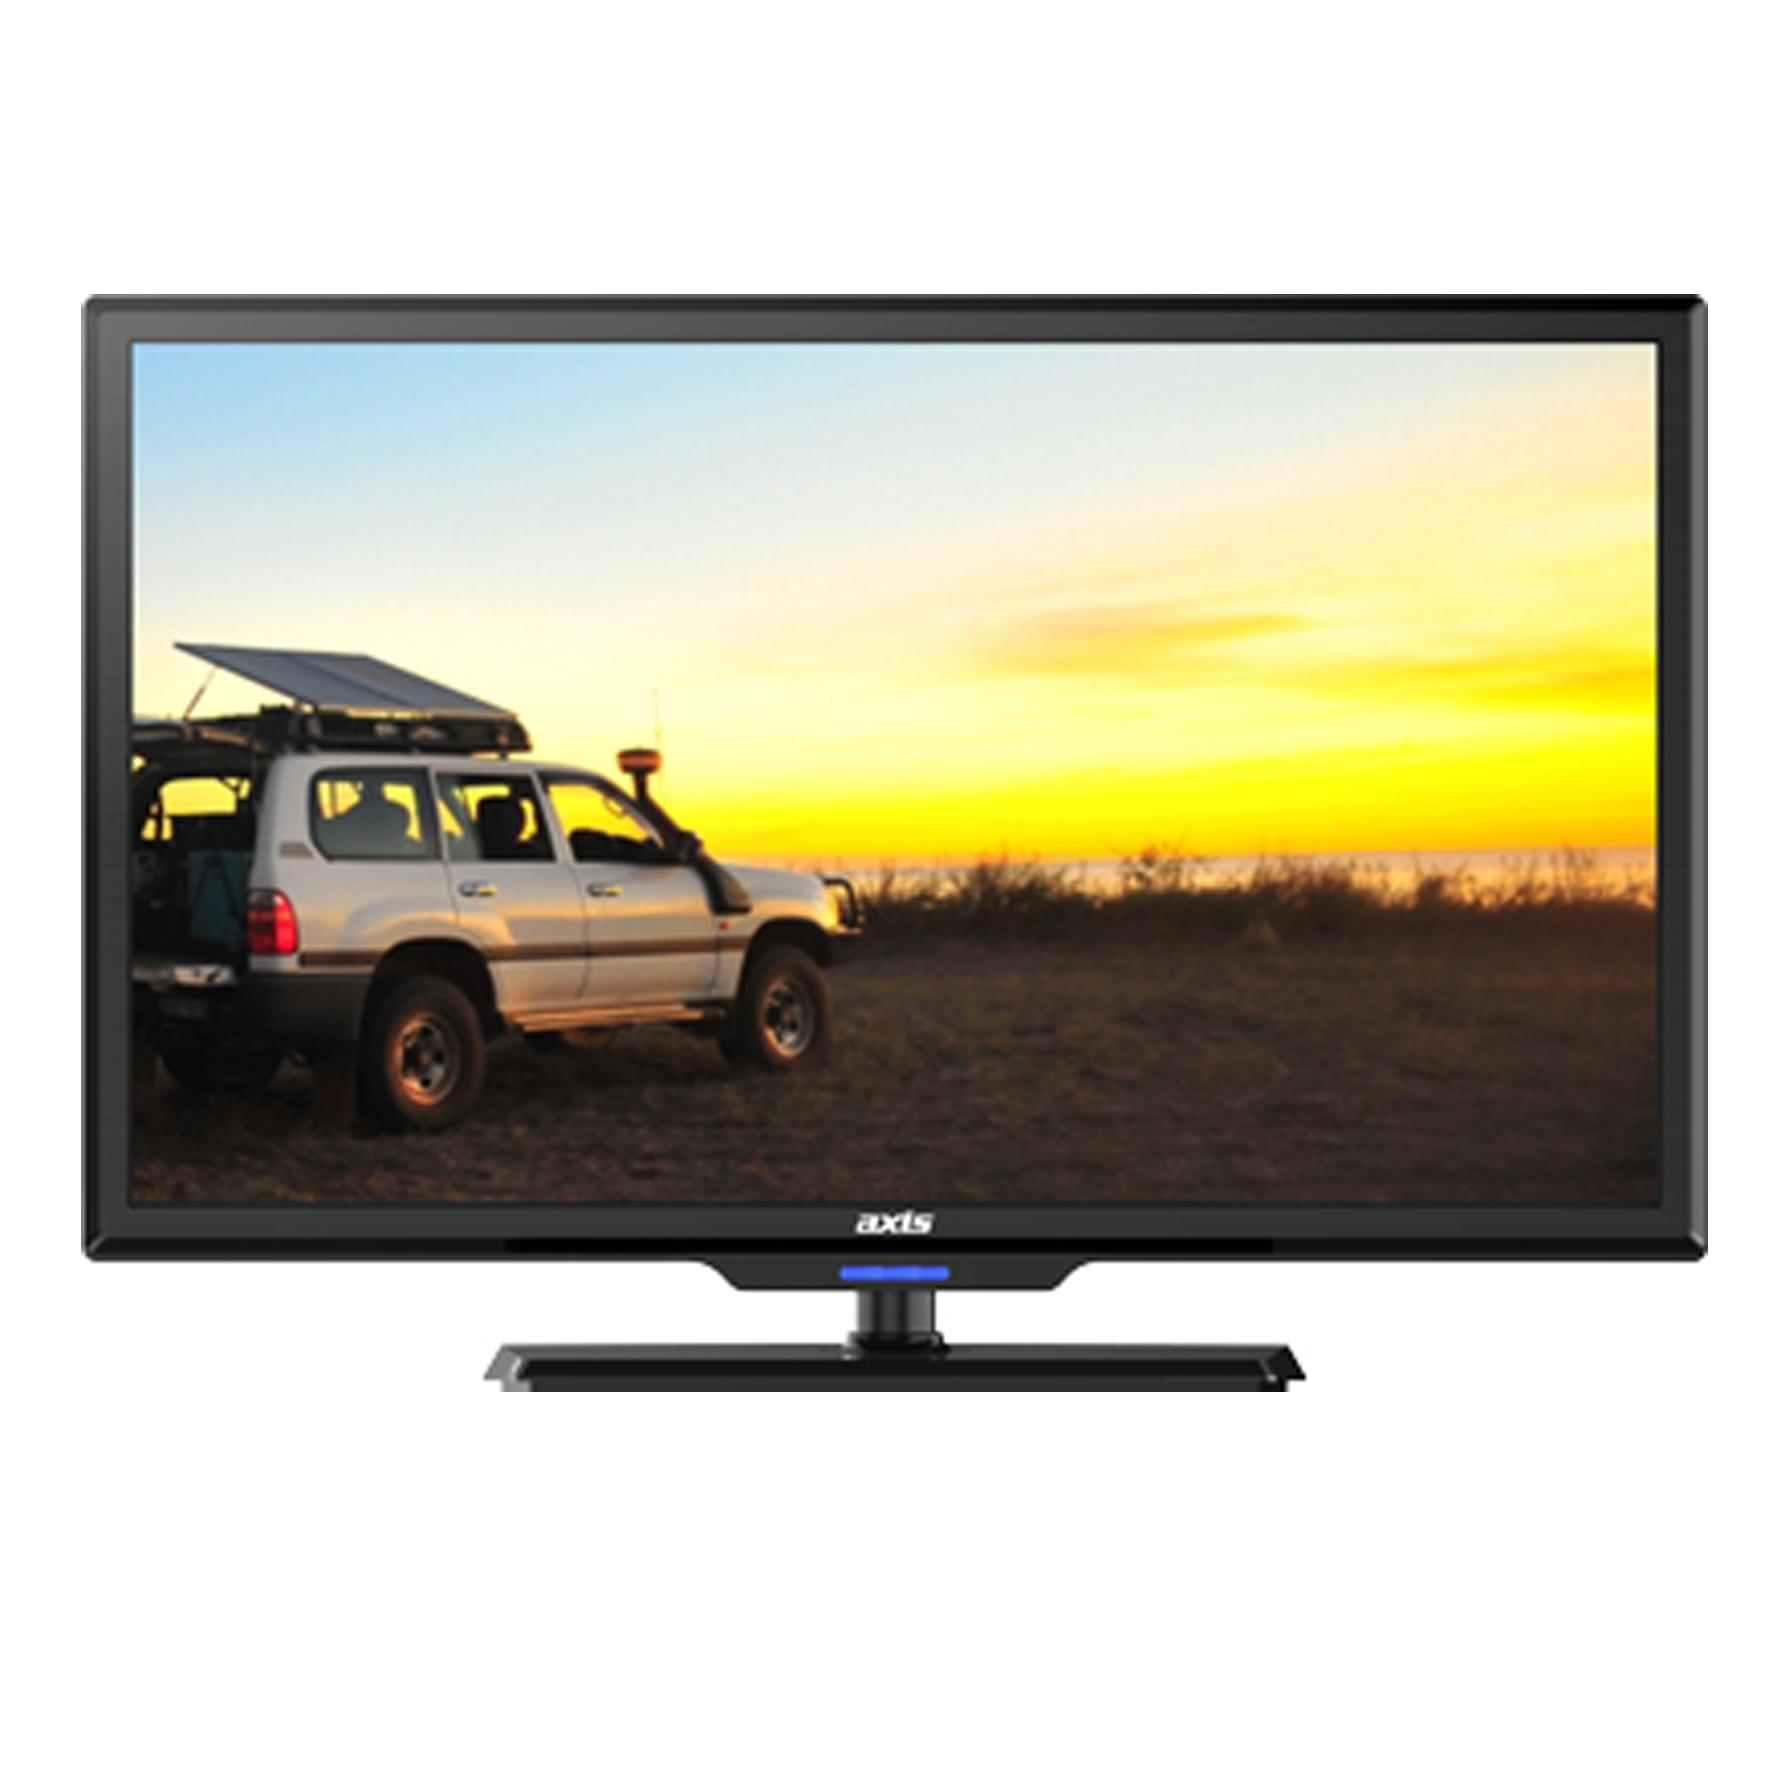 ax1524 axis series 2 24 led dvd multimedia tv home of 12 volt. Black Bedroom Furniture Sets. Home Design Ideas